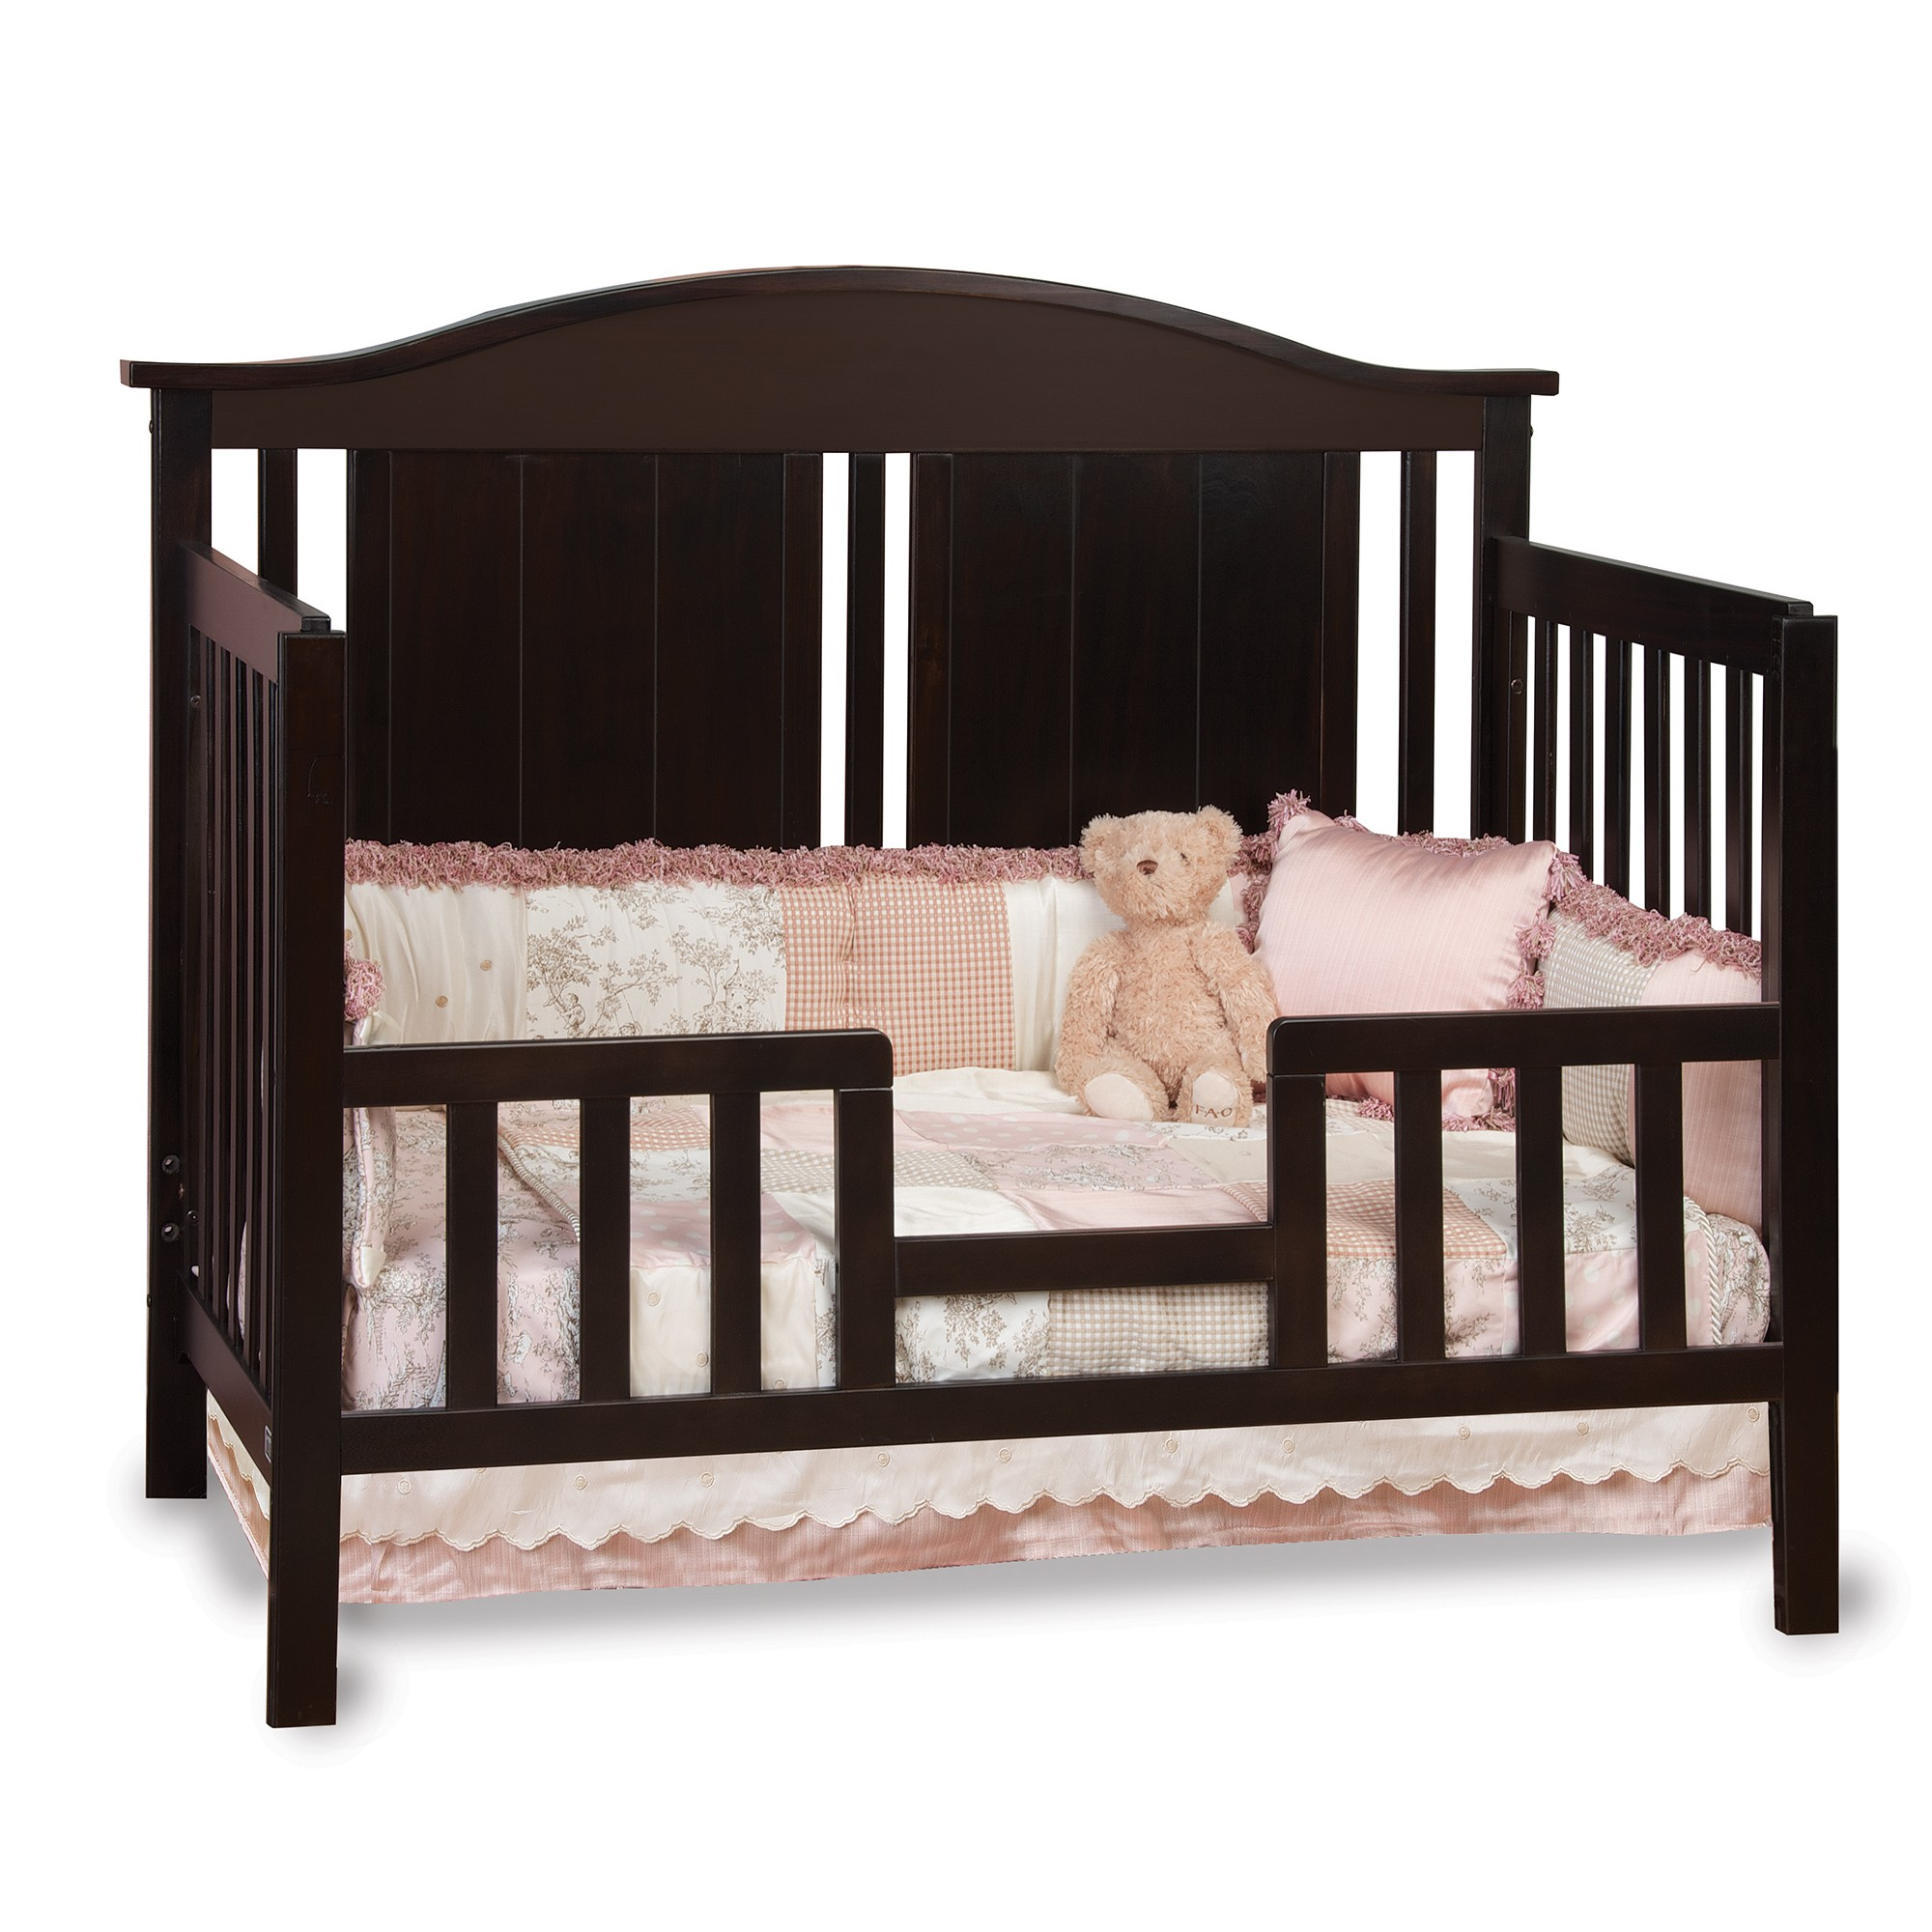 Converting Crib To Toddler Bed 28 Images Babyletto